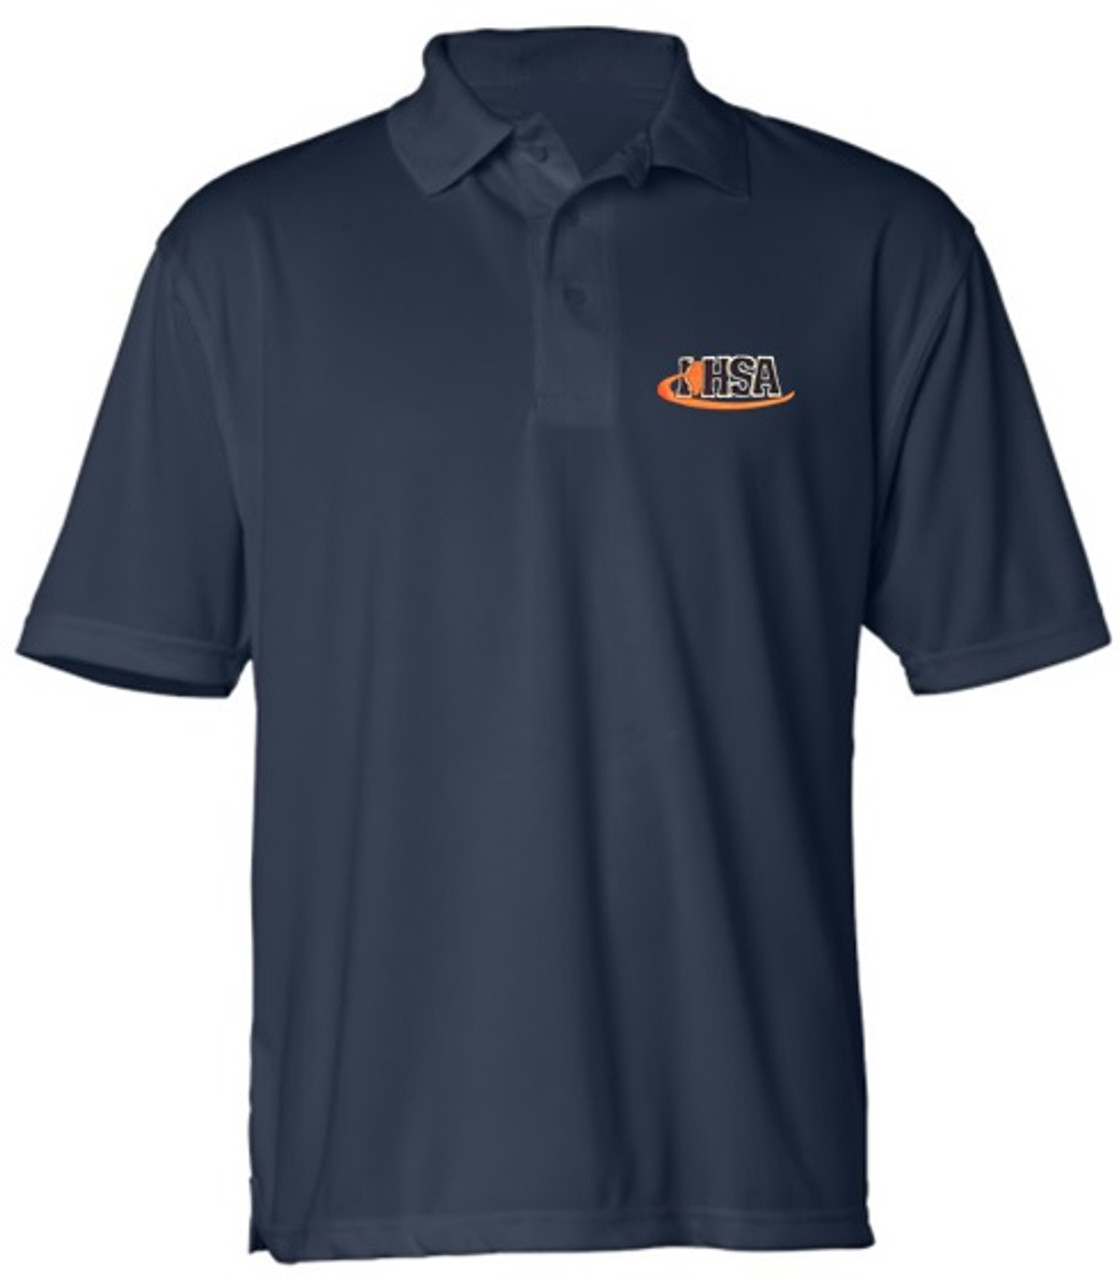 Illinois IHSA Polo Shirt